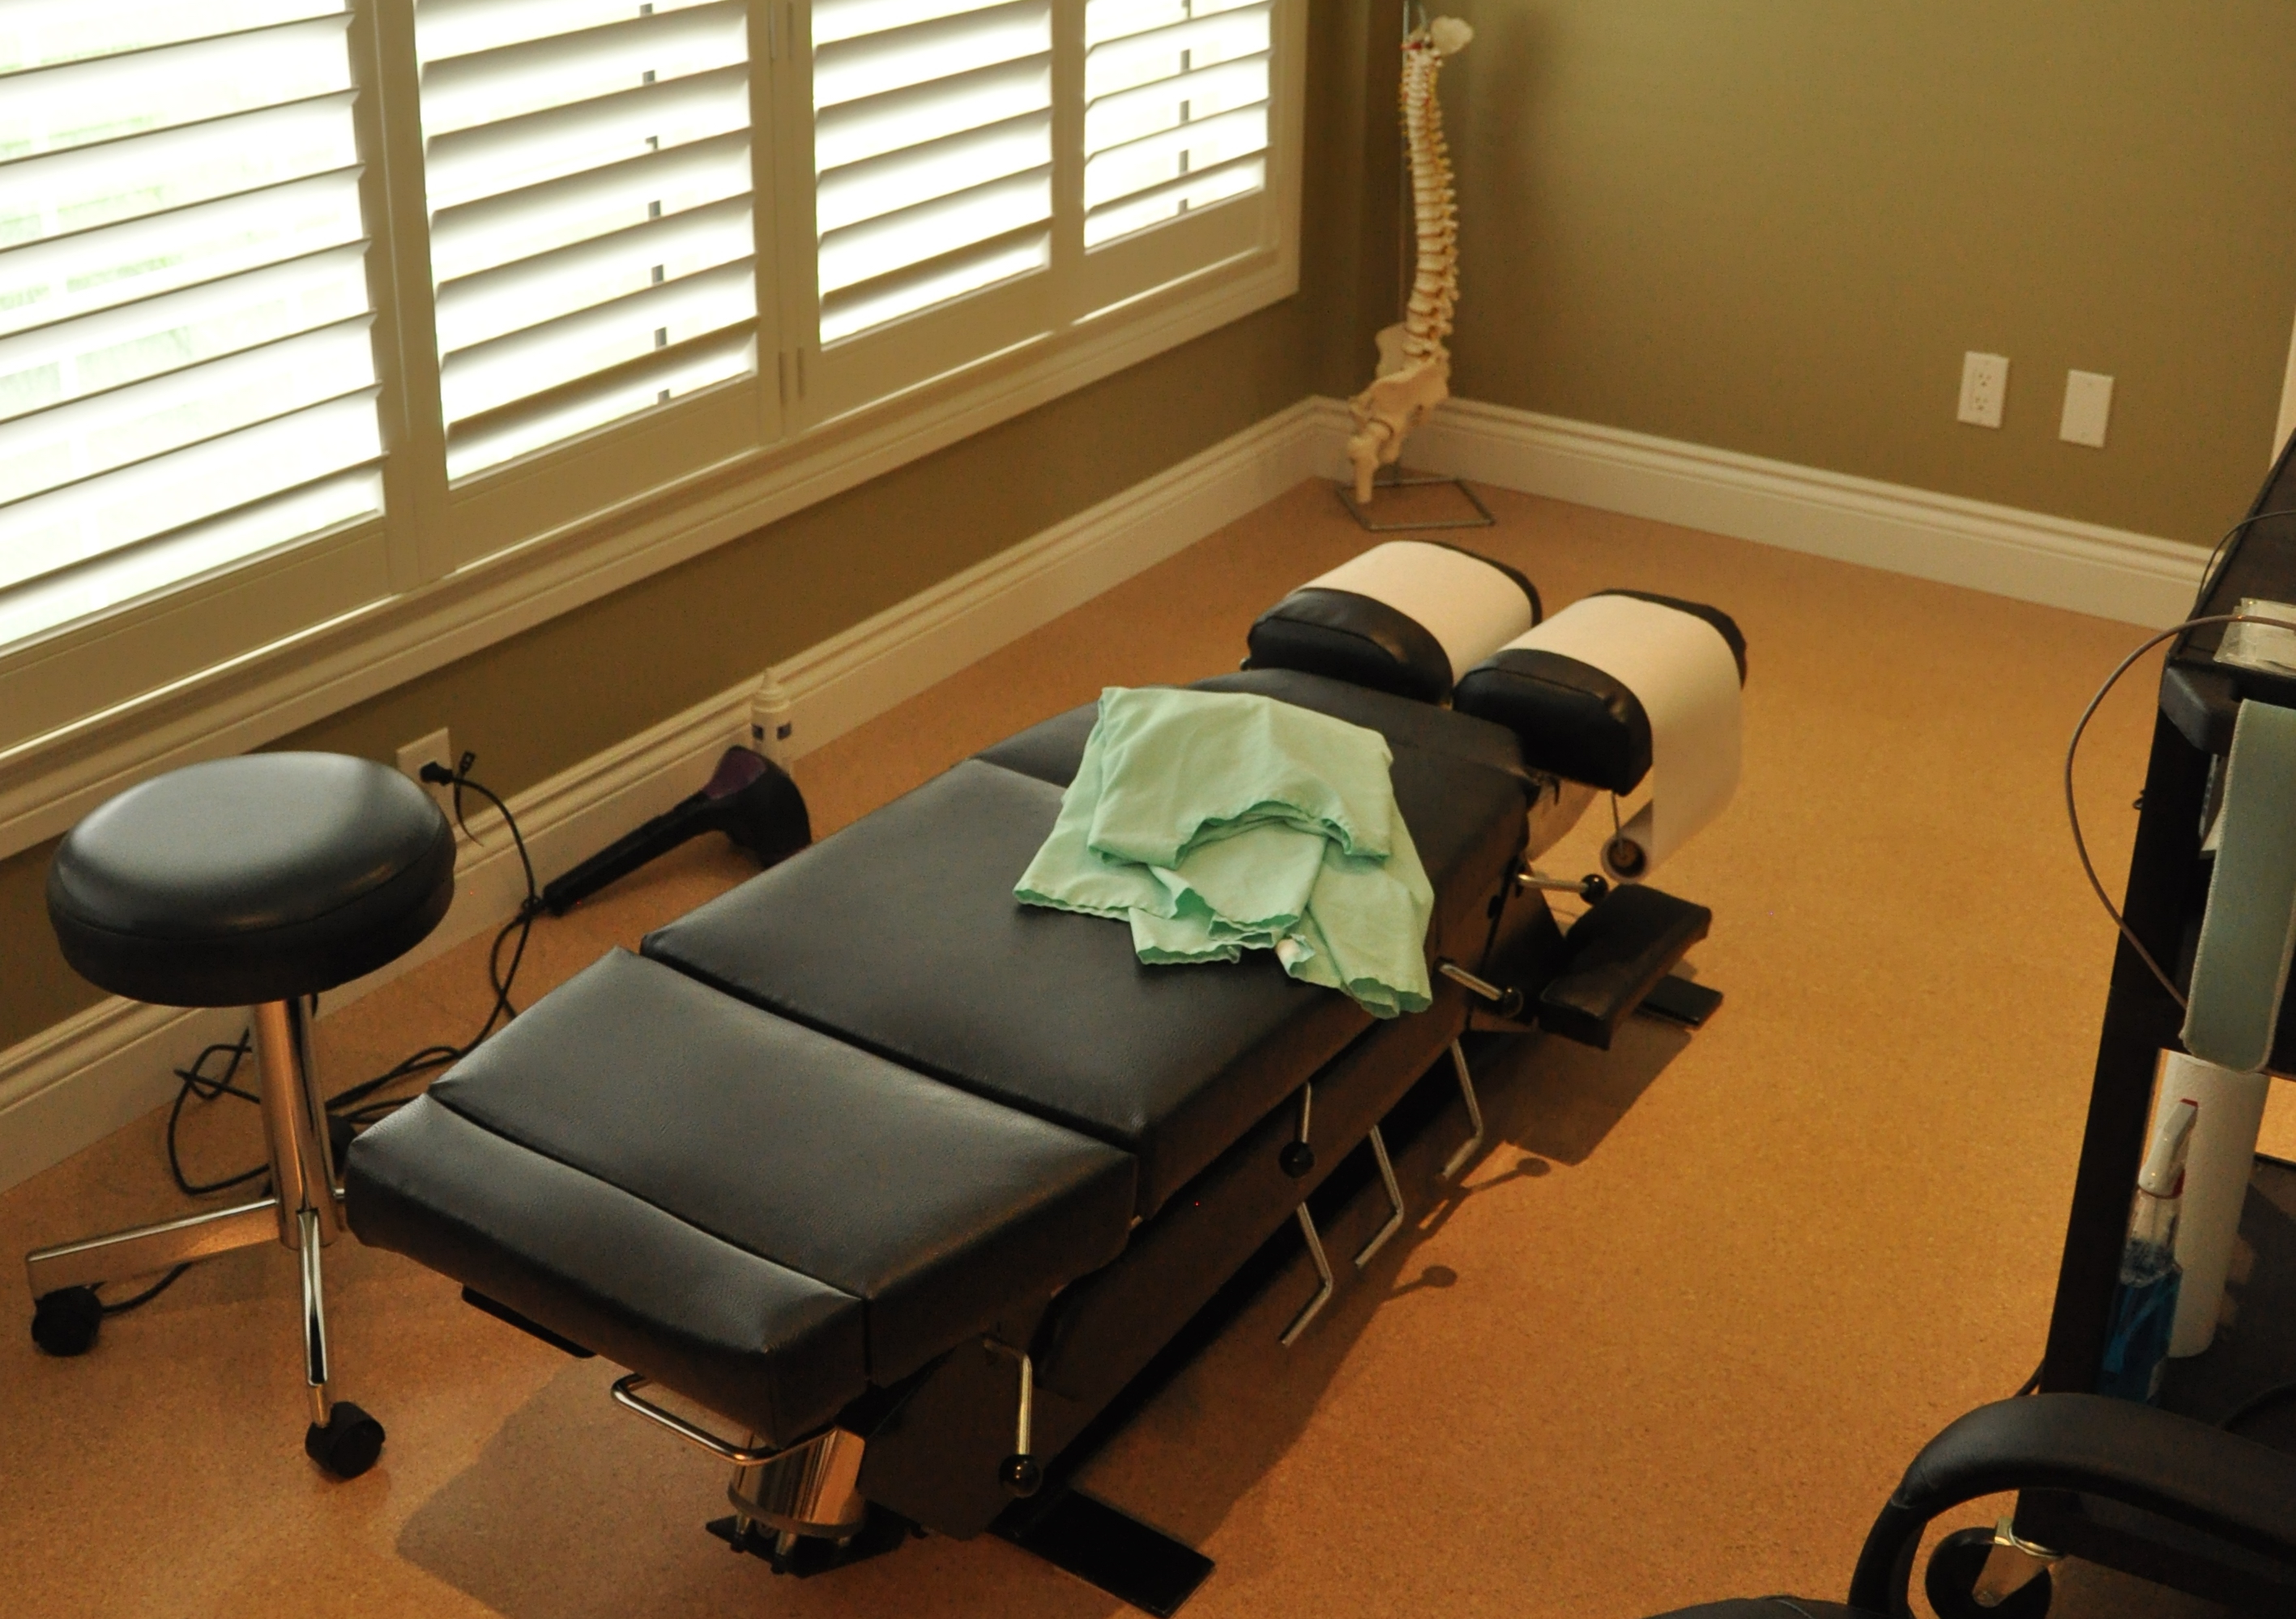 Chiropractic Treatment Room